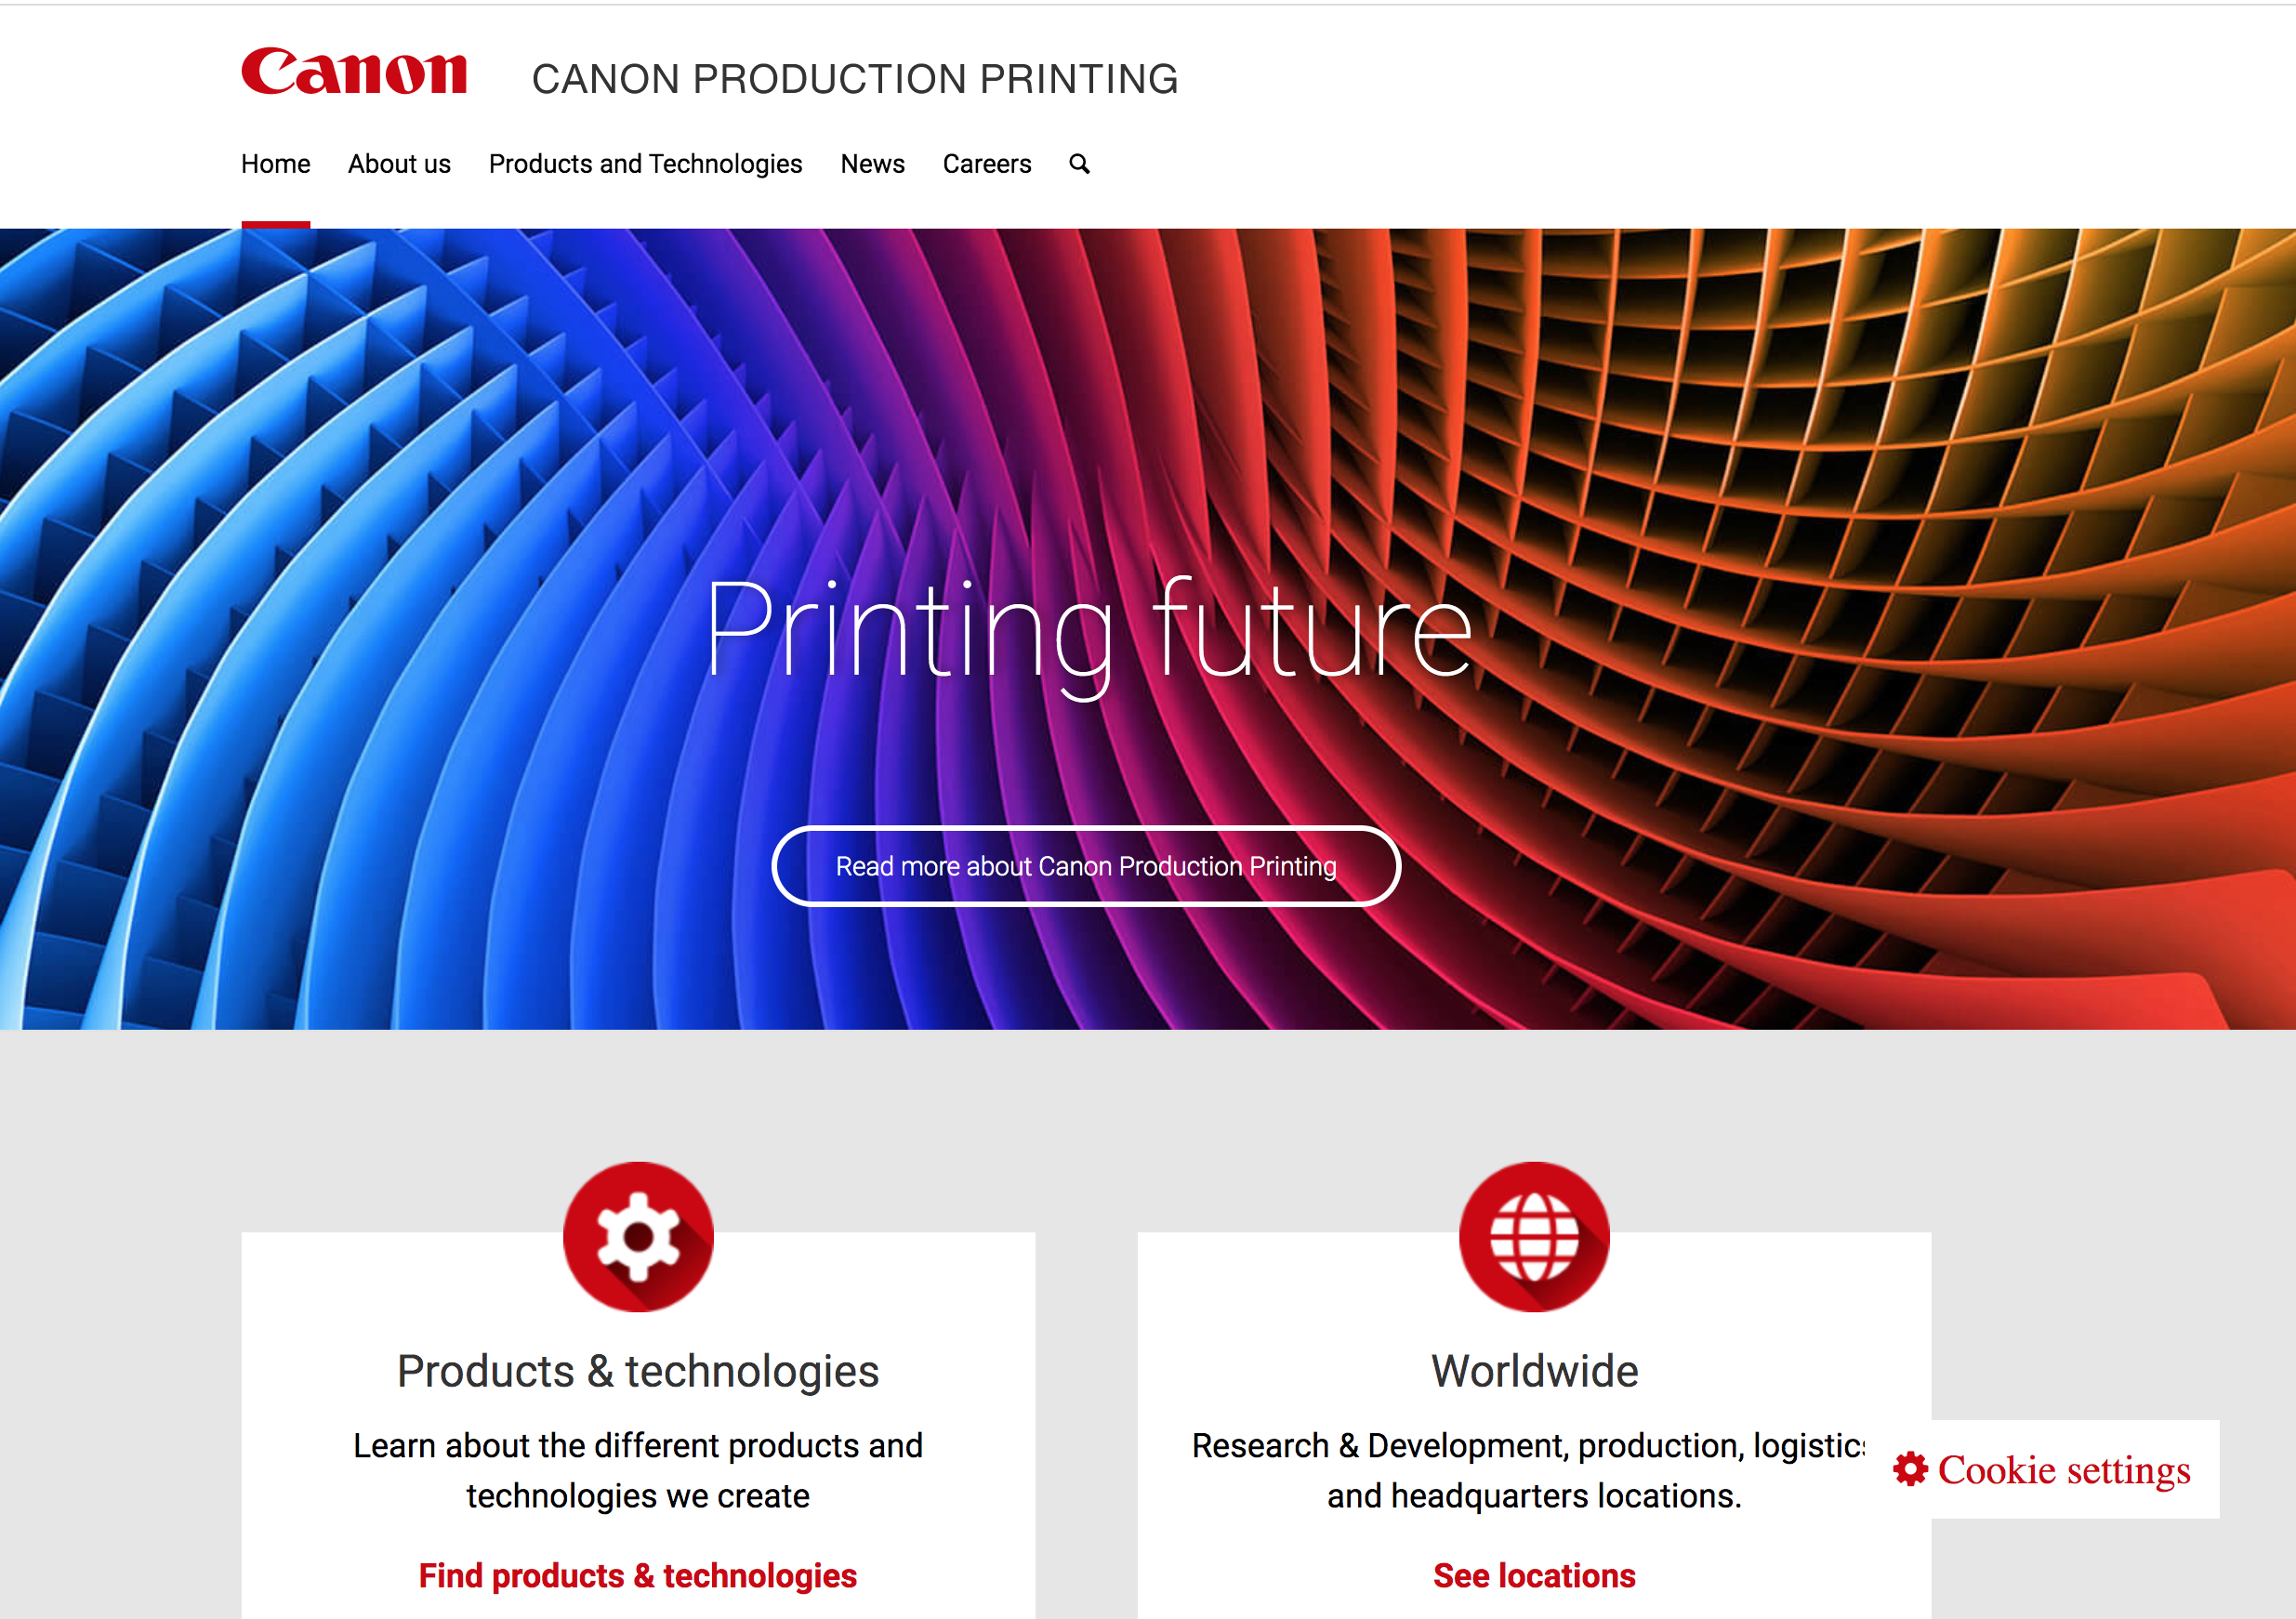 Canon launches their production printing portal on .canon